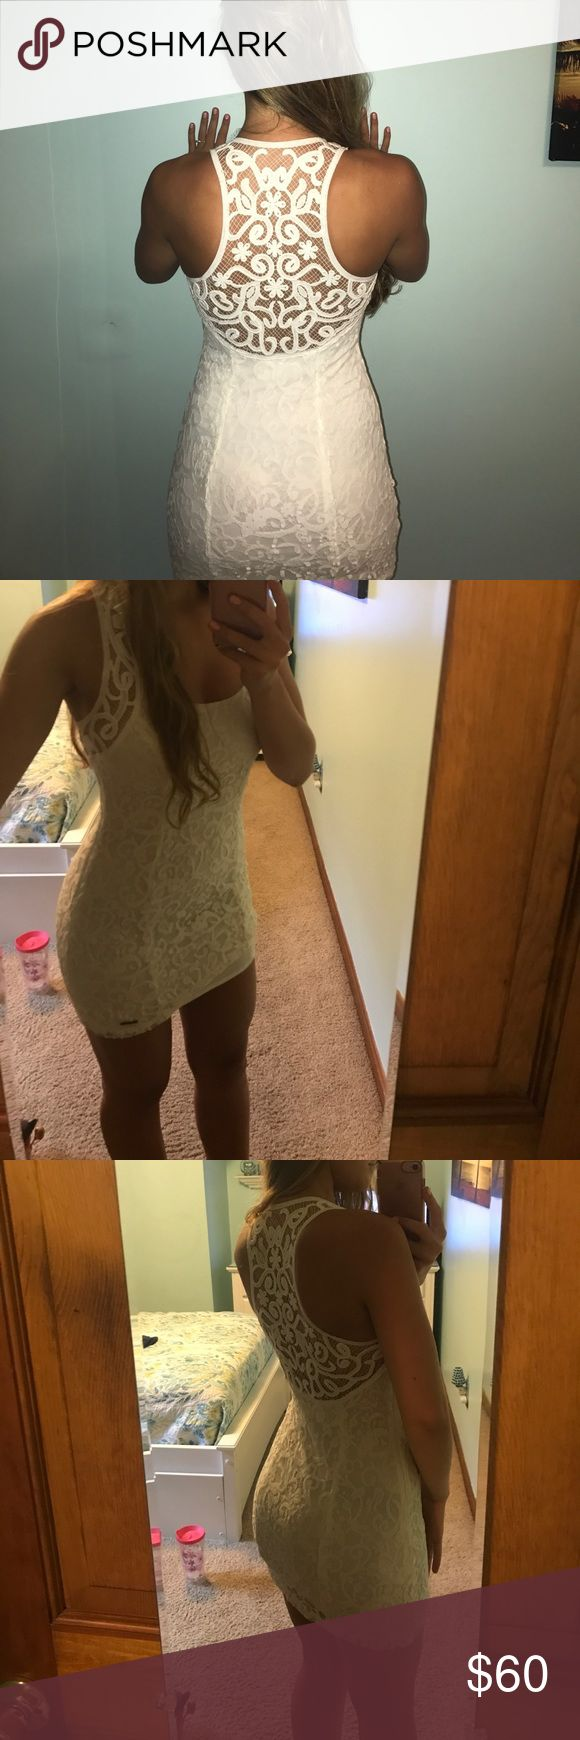 Lace hollister dress size 2 WORN ONCE for engagement photo. Perfect condition. Dress is size 2 but I think it fits more like a 0. So sad to let this go but it's too snug on me! Please make me an offer!!! Hollister Dresses Mini